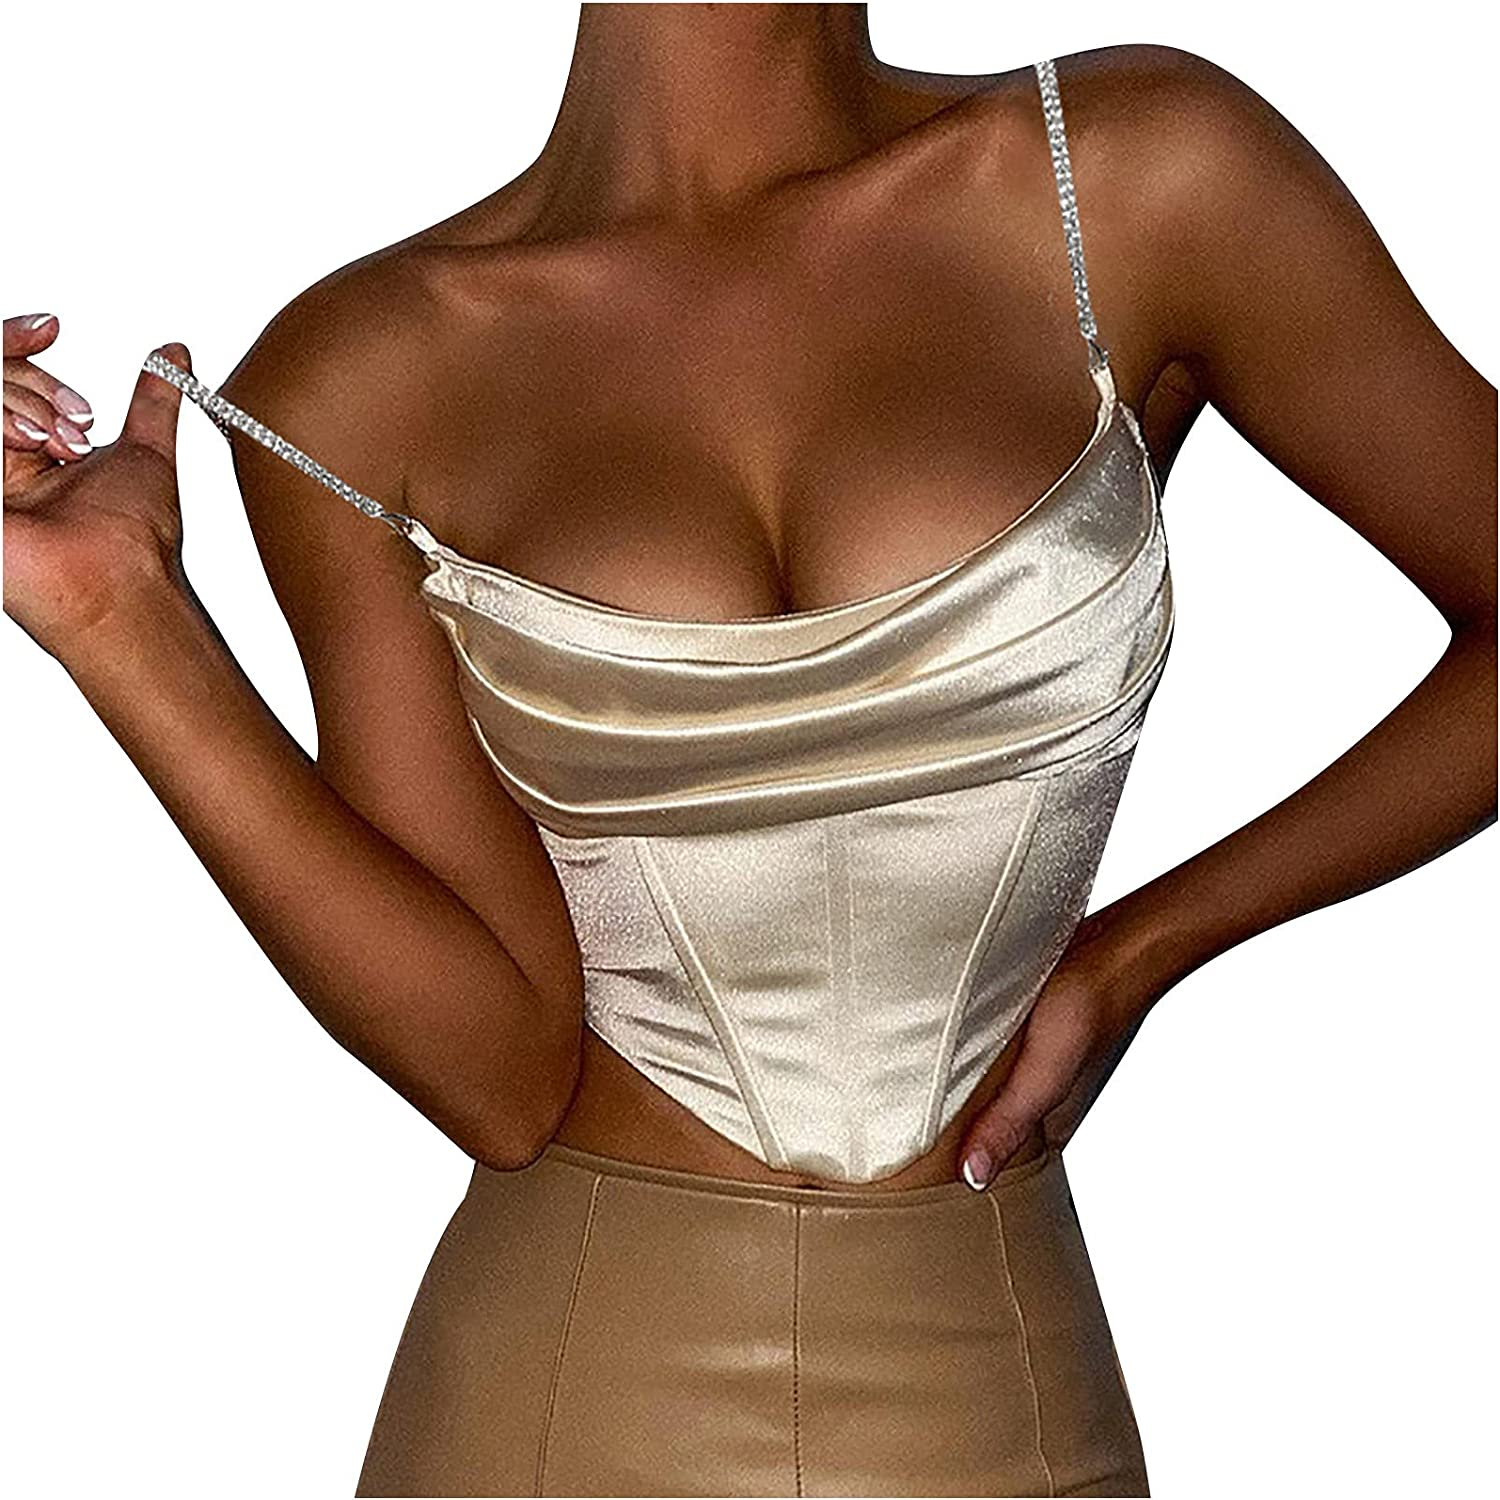 Womens Summer Tops Women's Solid Color Diamond Sling Sexy Slim-fit Chest Wrap Waist Tank Top Blouses for Women Fashion